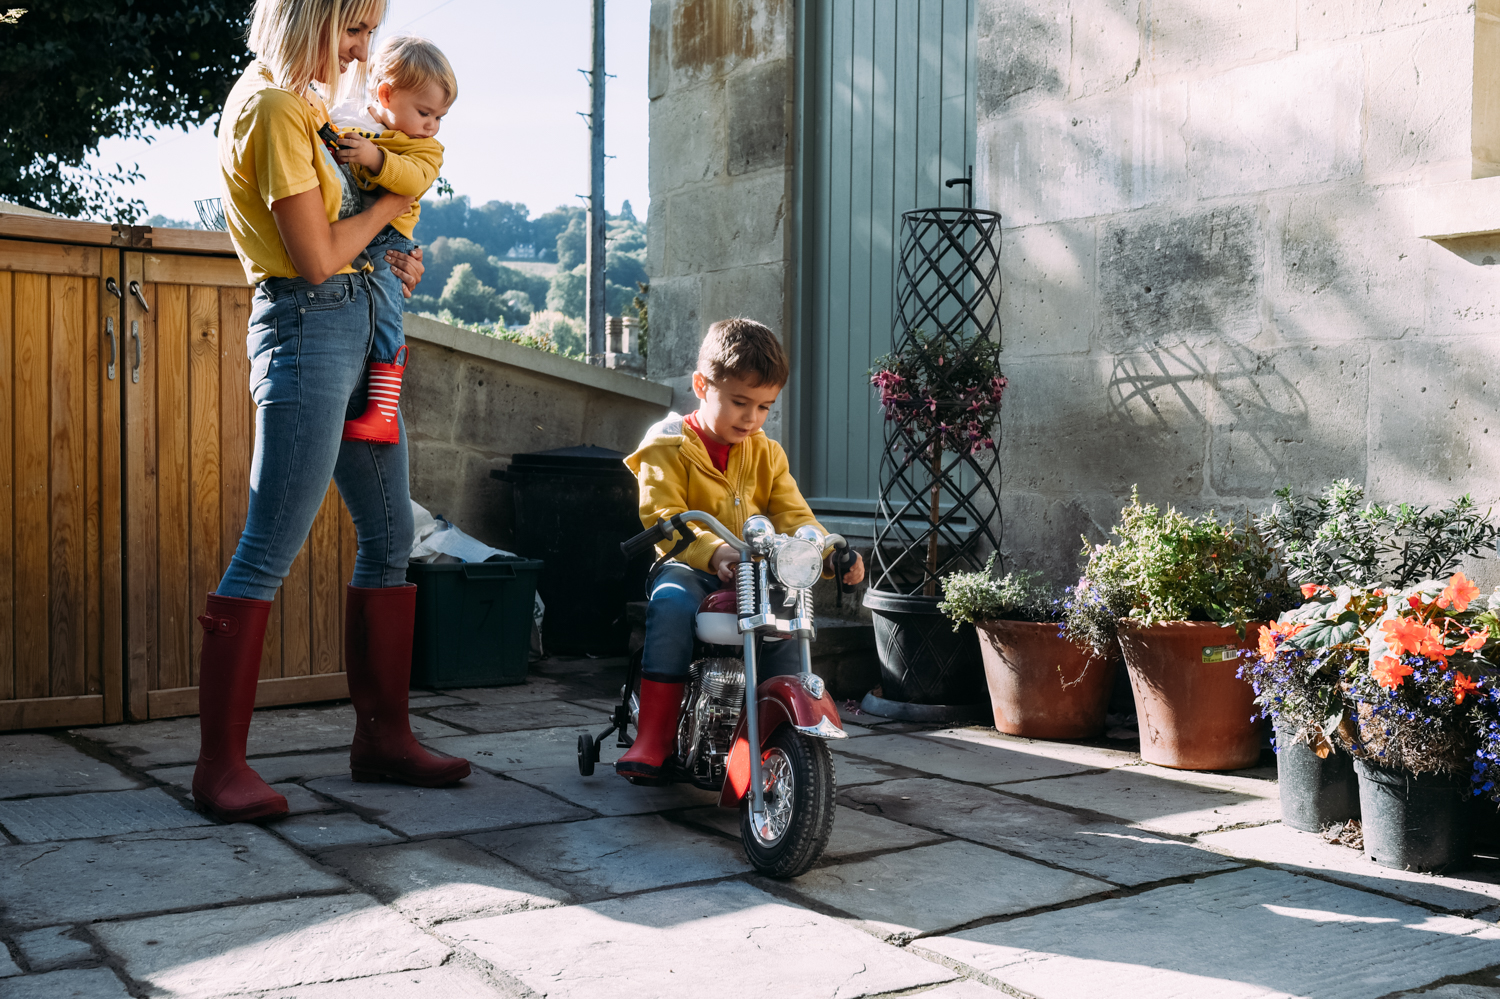 A little boy sits on his miniature motorbike in his garden as his mother and baby brother look on smiling.